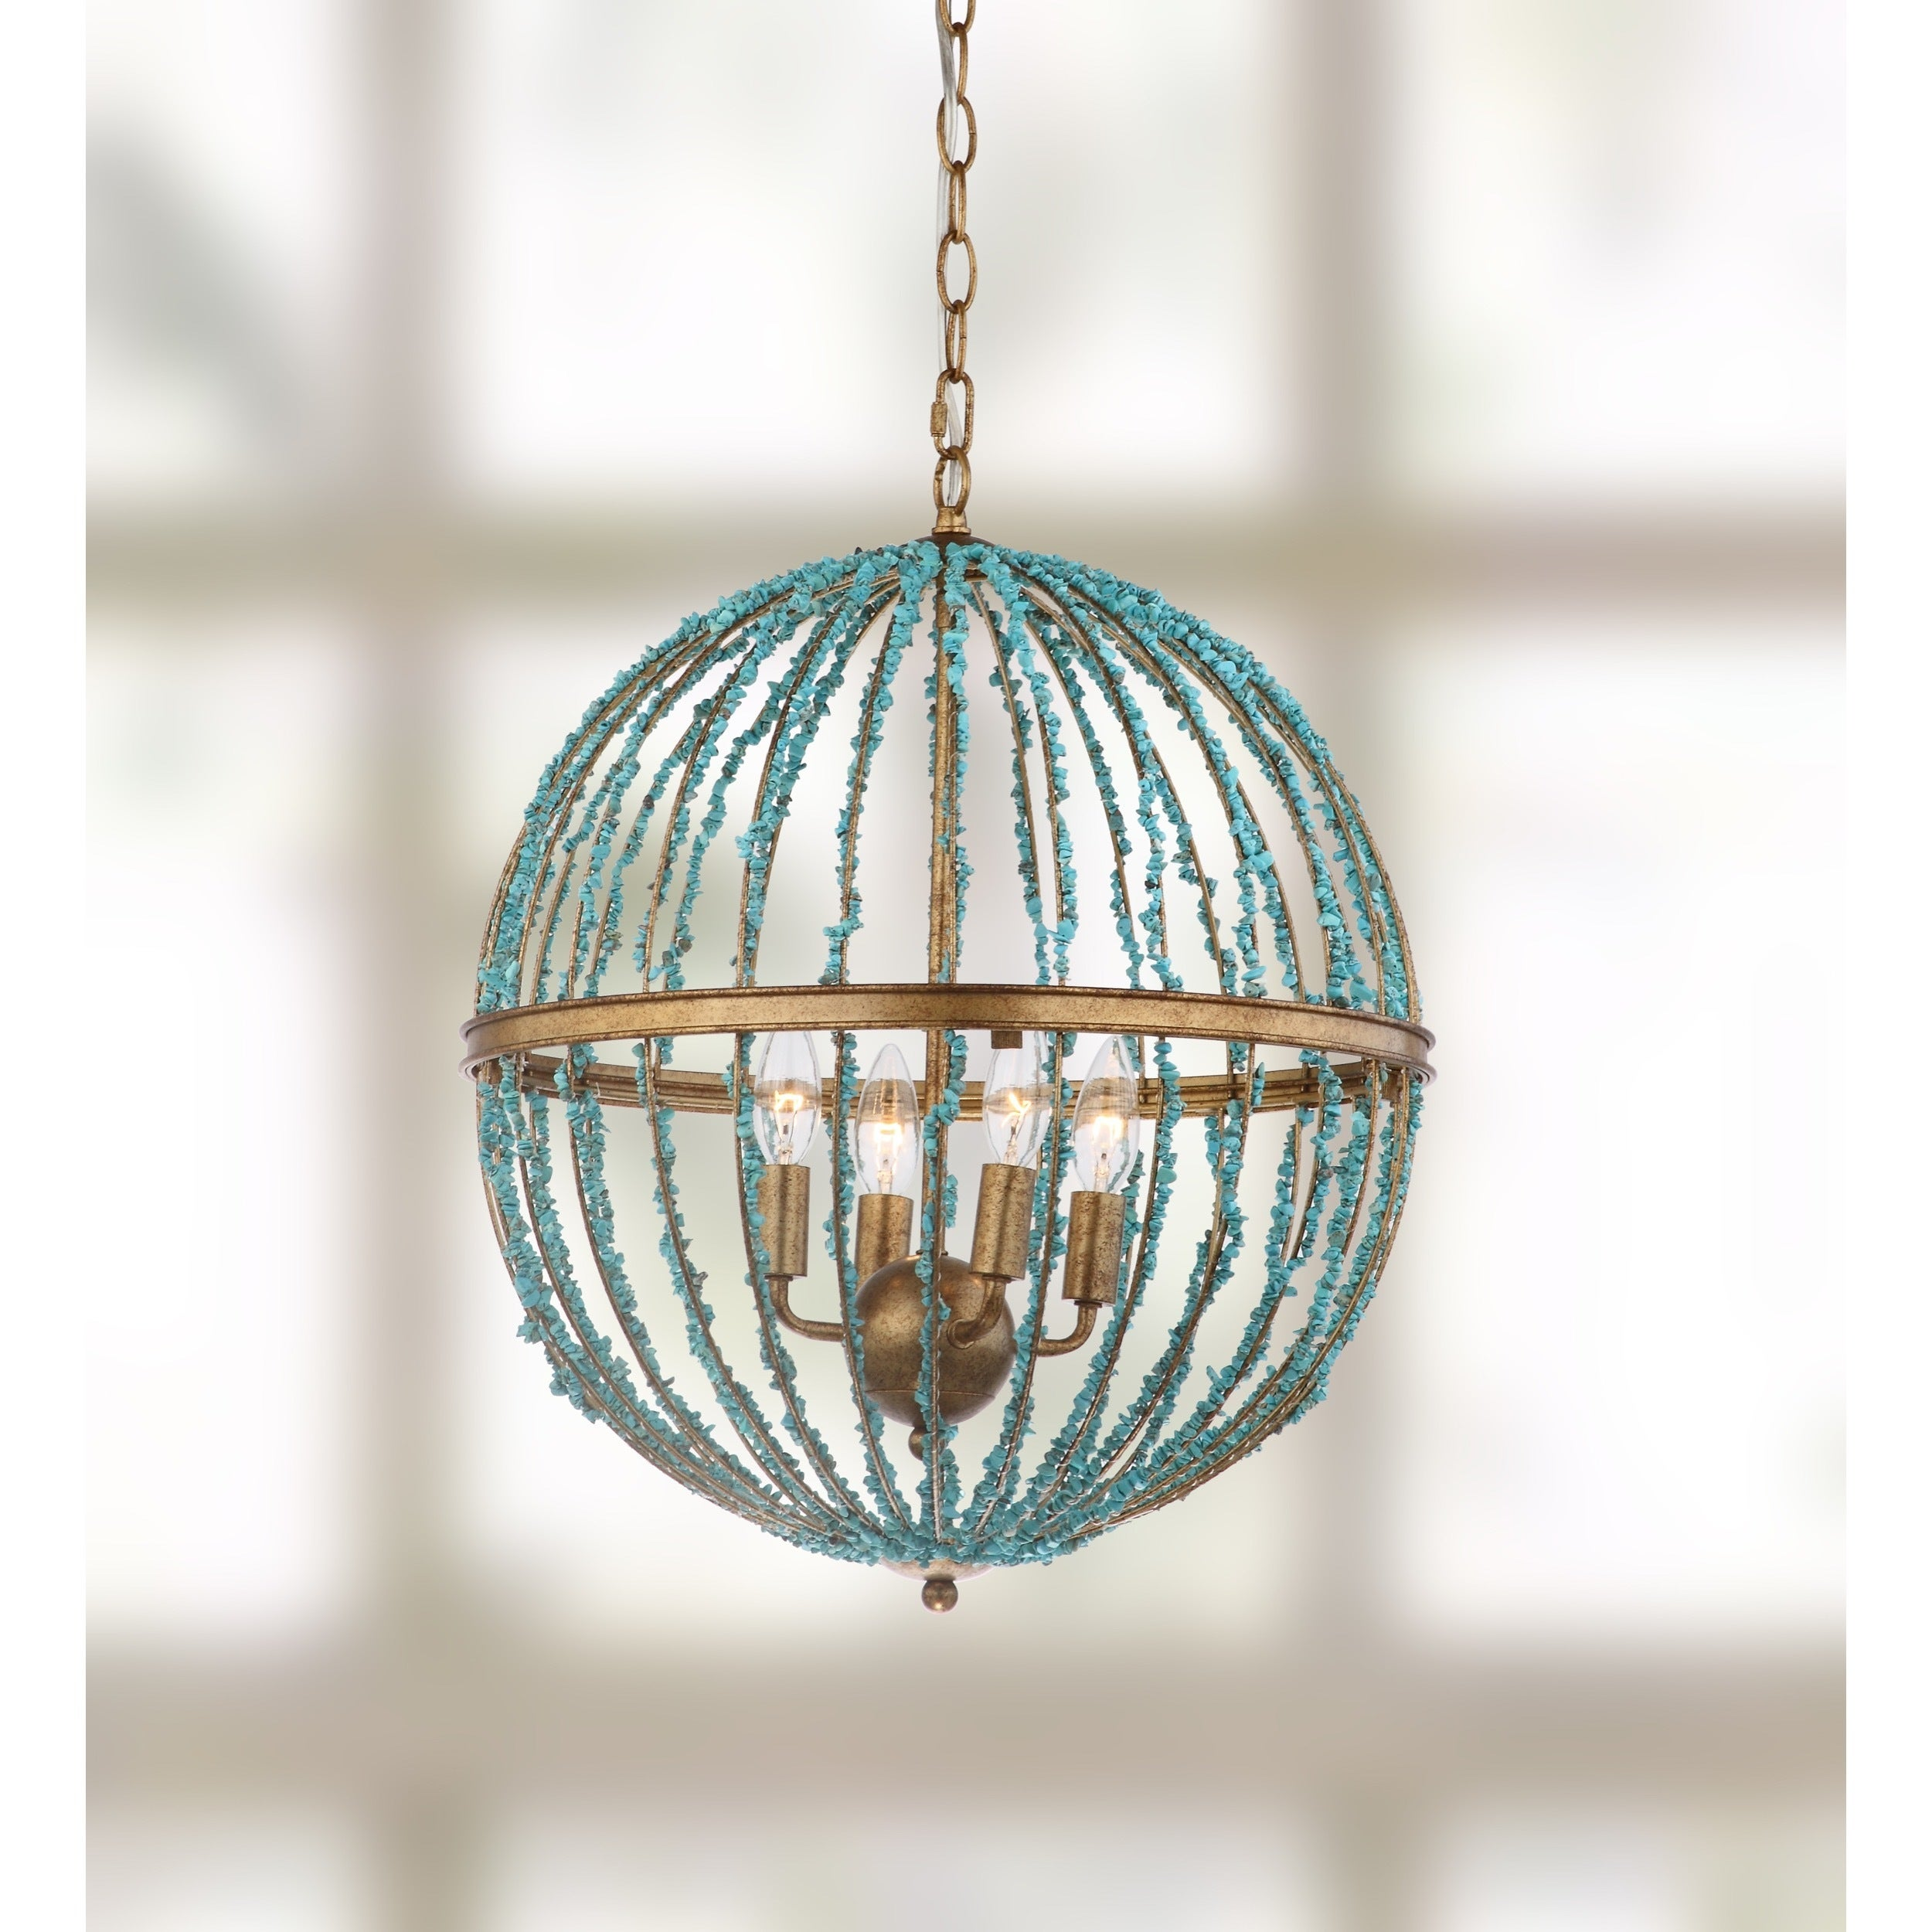 Safavieh lighting 19 inch lalita blue cage chandelier free safavieh lighting 19 inch lalita blue cage chandelier free shipping today overstock 25478663 arubaitofo Image collections